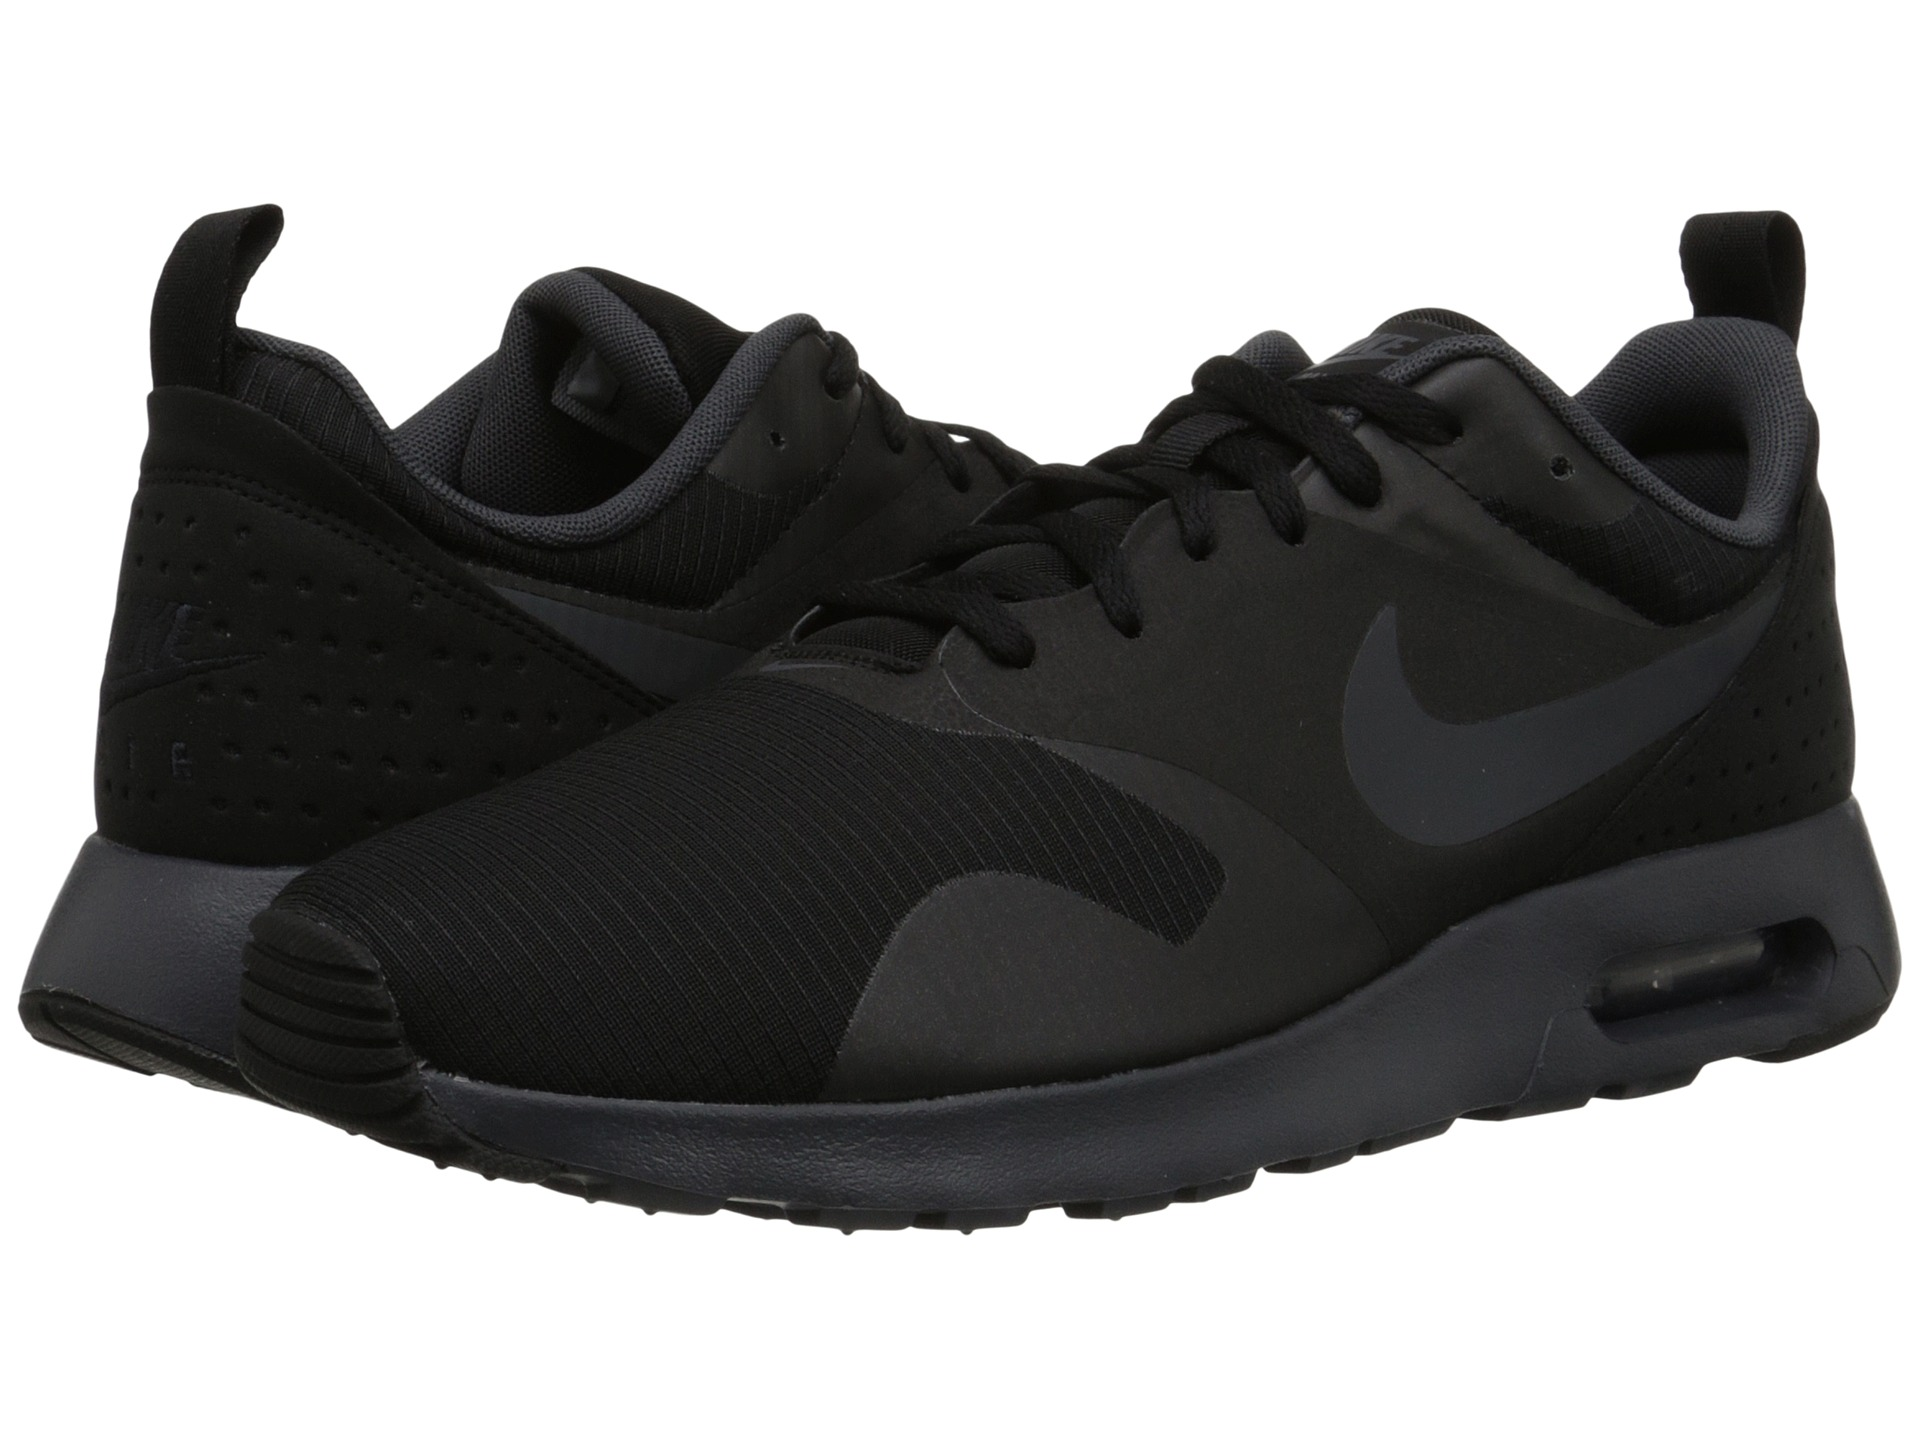 Nike Air Max Tavas Ltr Review